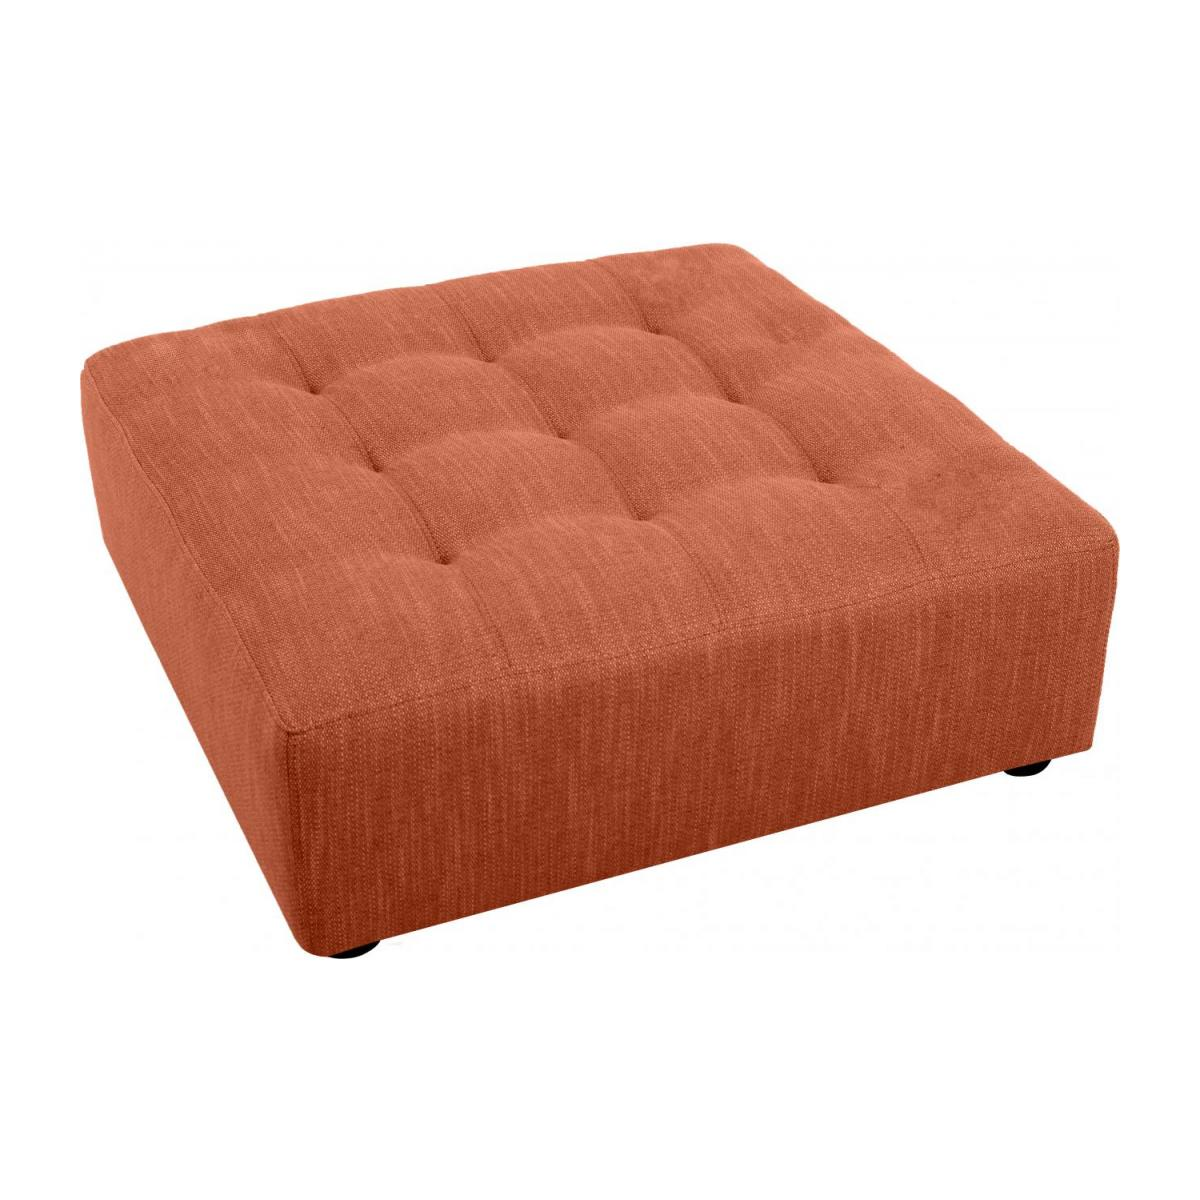 Fußhocker aus Stoff - Orange n°2